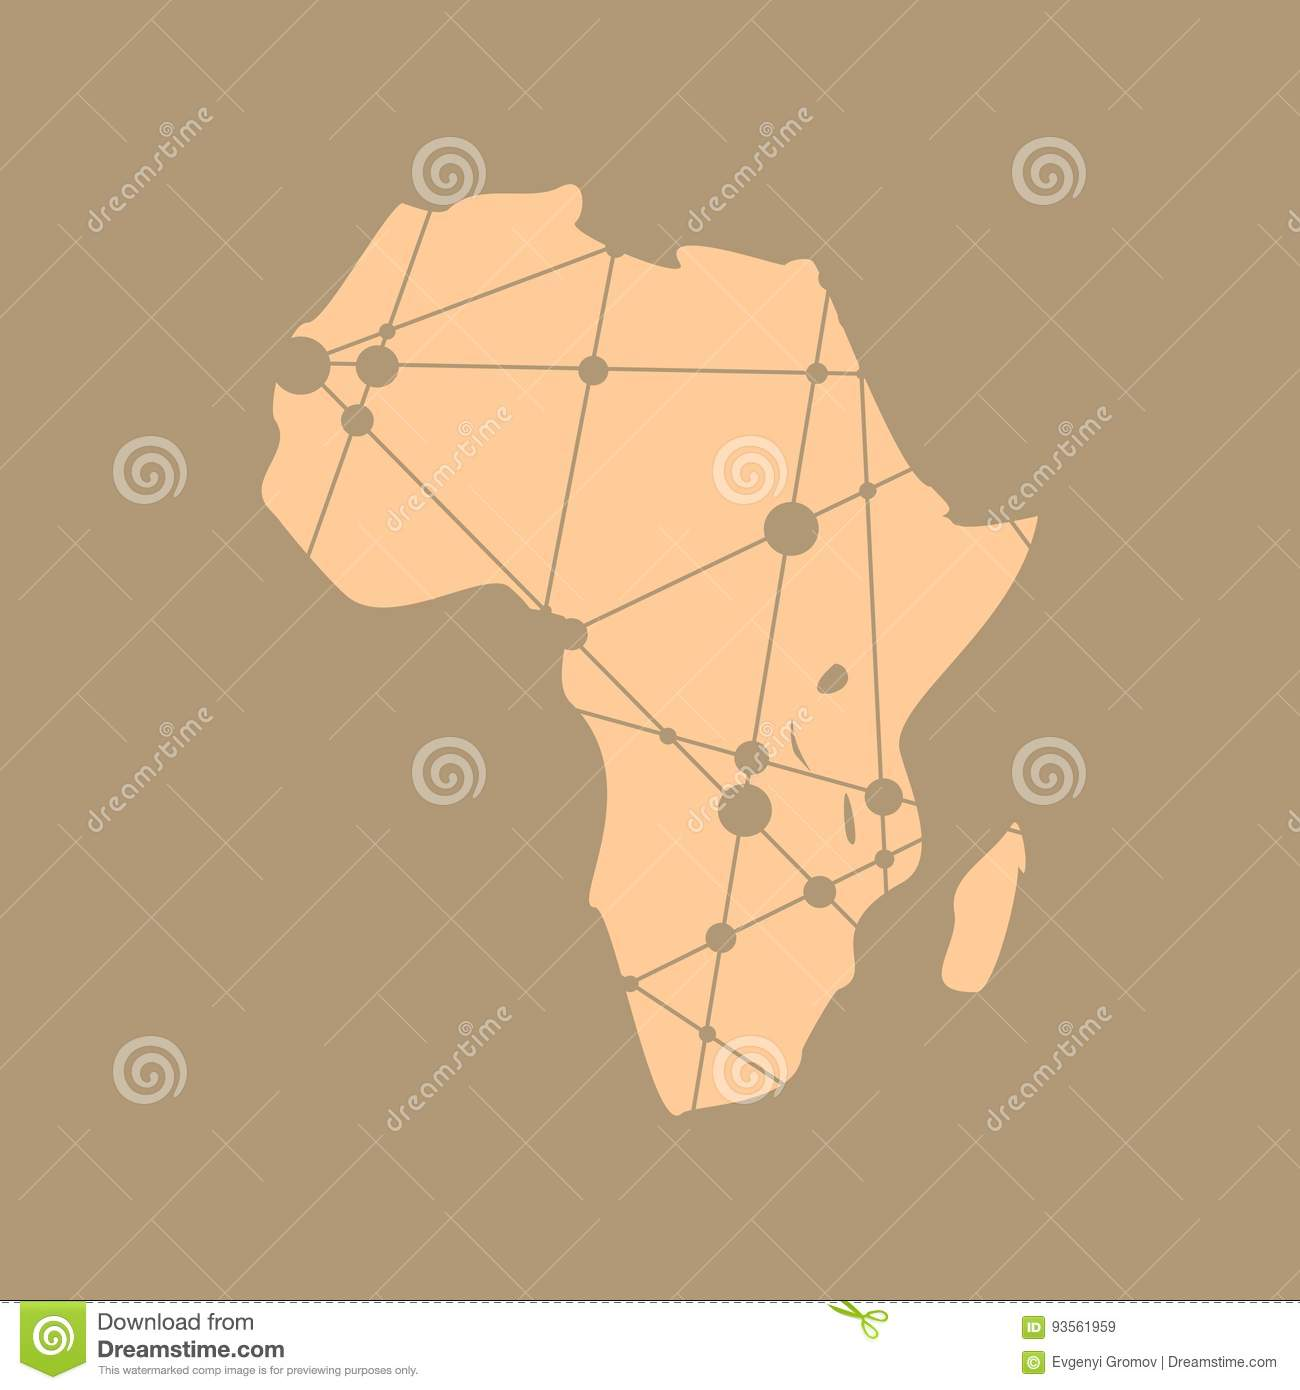 Low poly map of Africa stock vector. Illustration of logo - 93561959